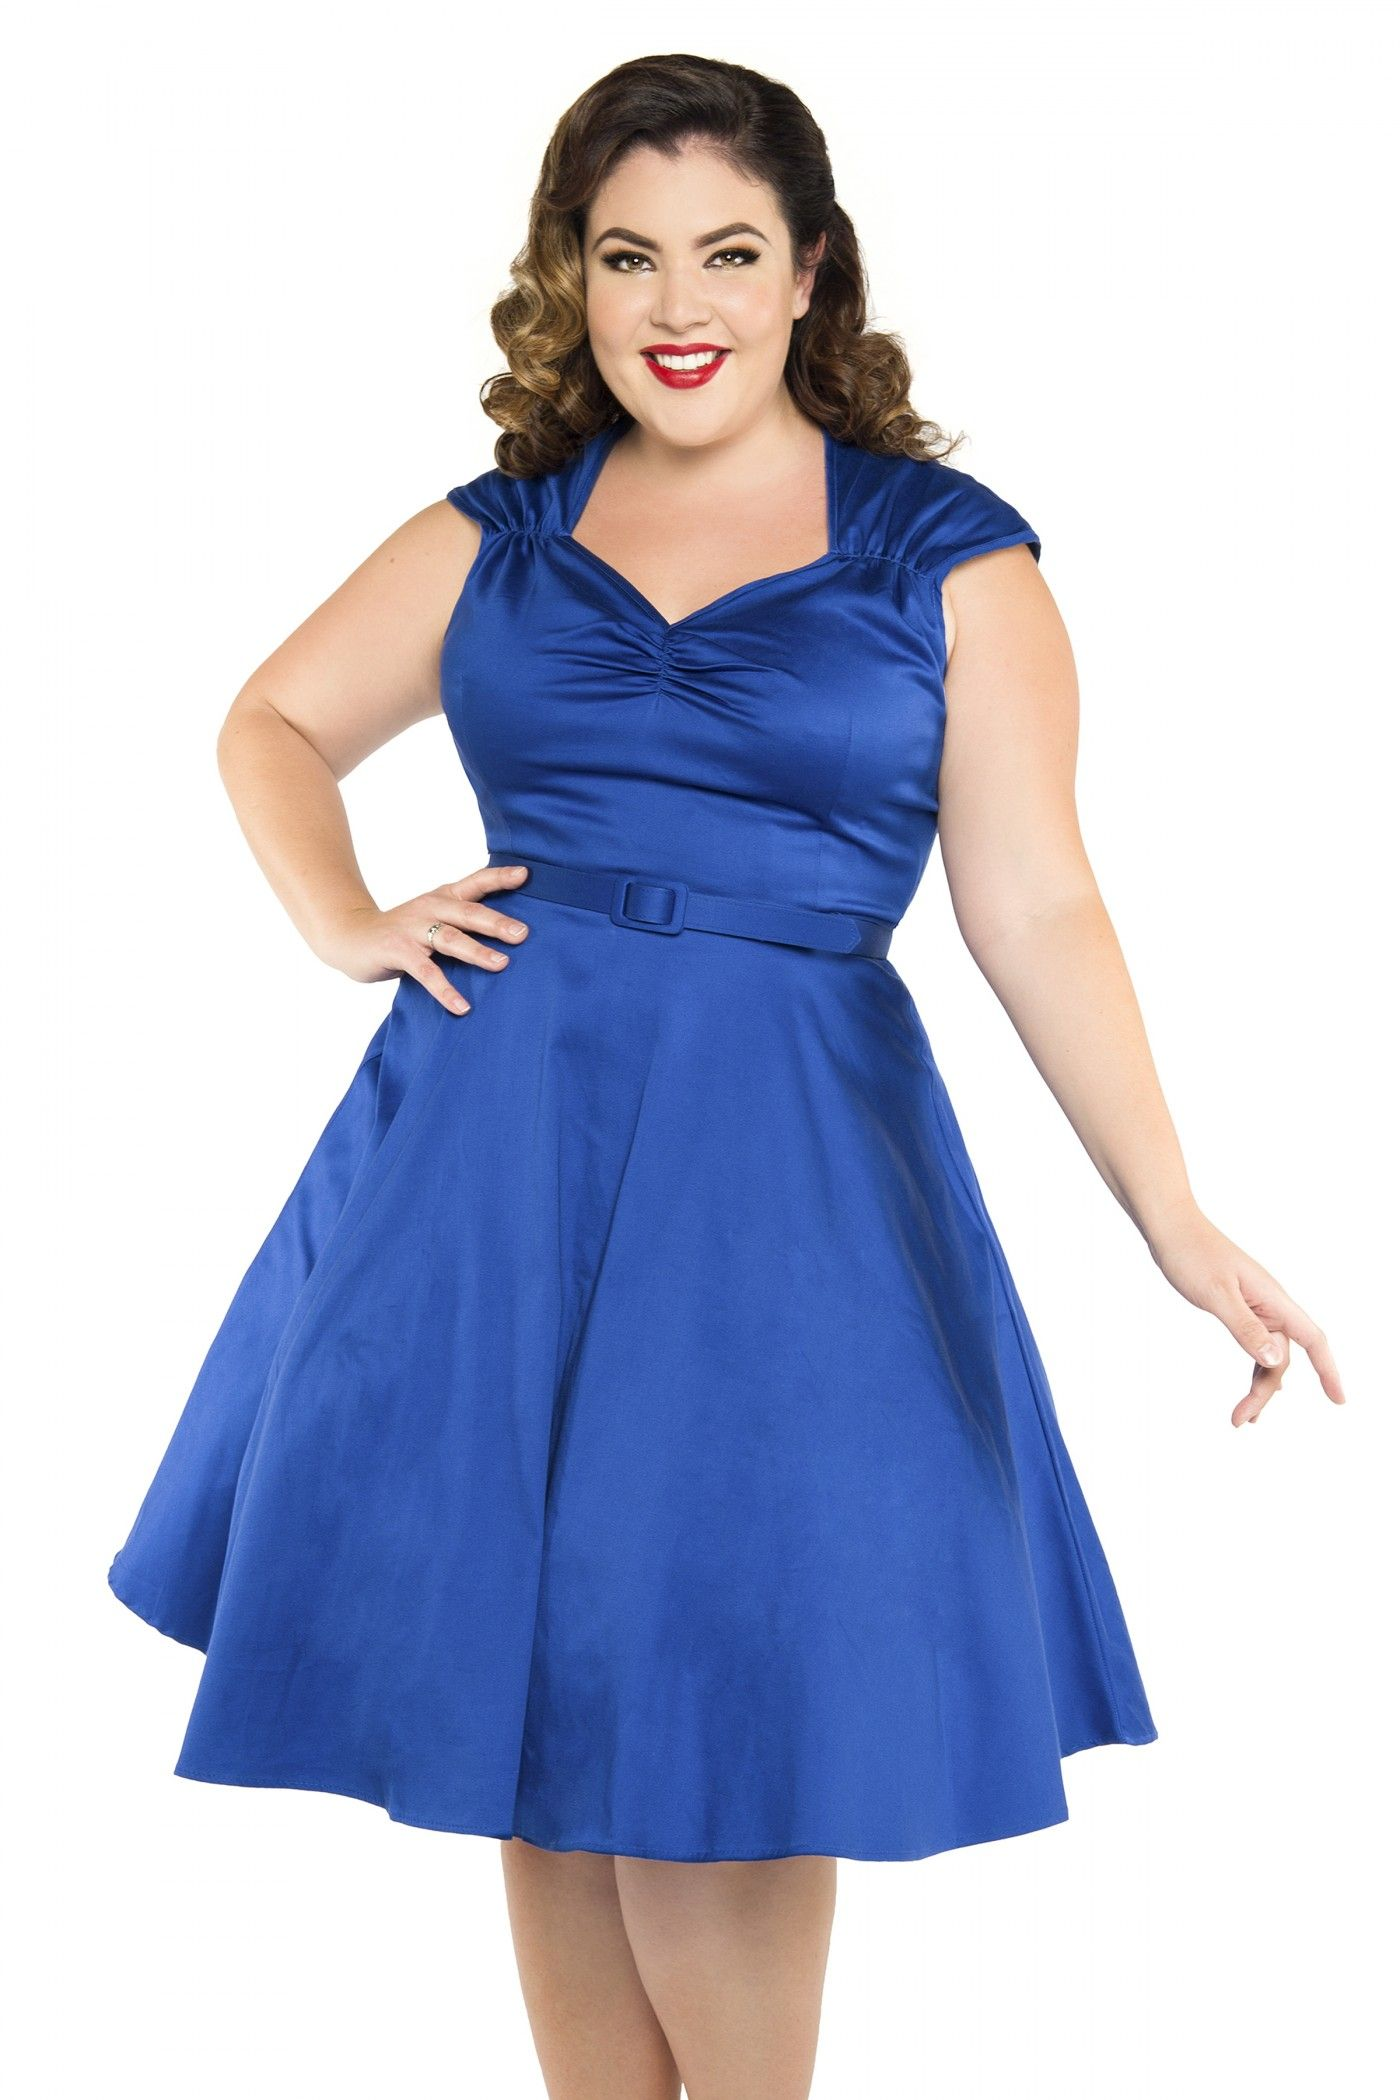 Pinup Couture Heidi Dress in Royal Blue Plus Size